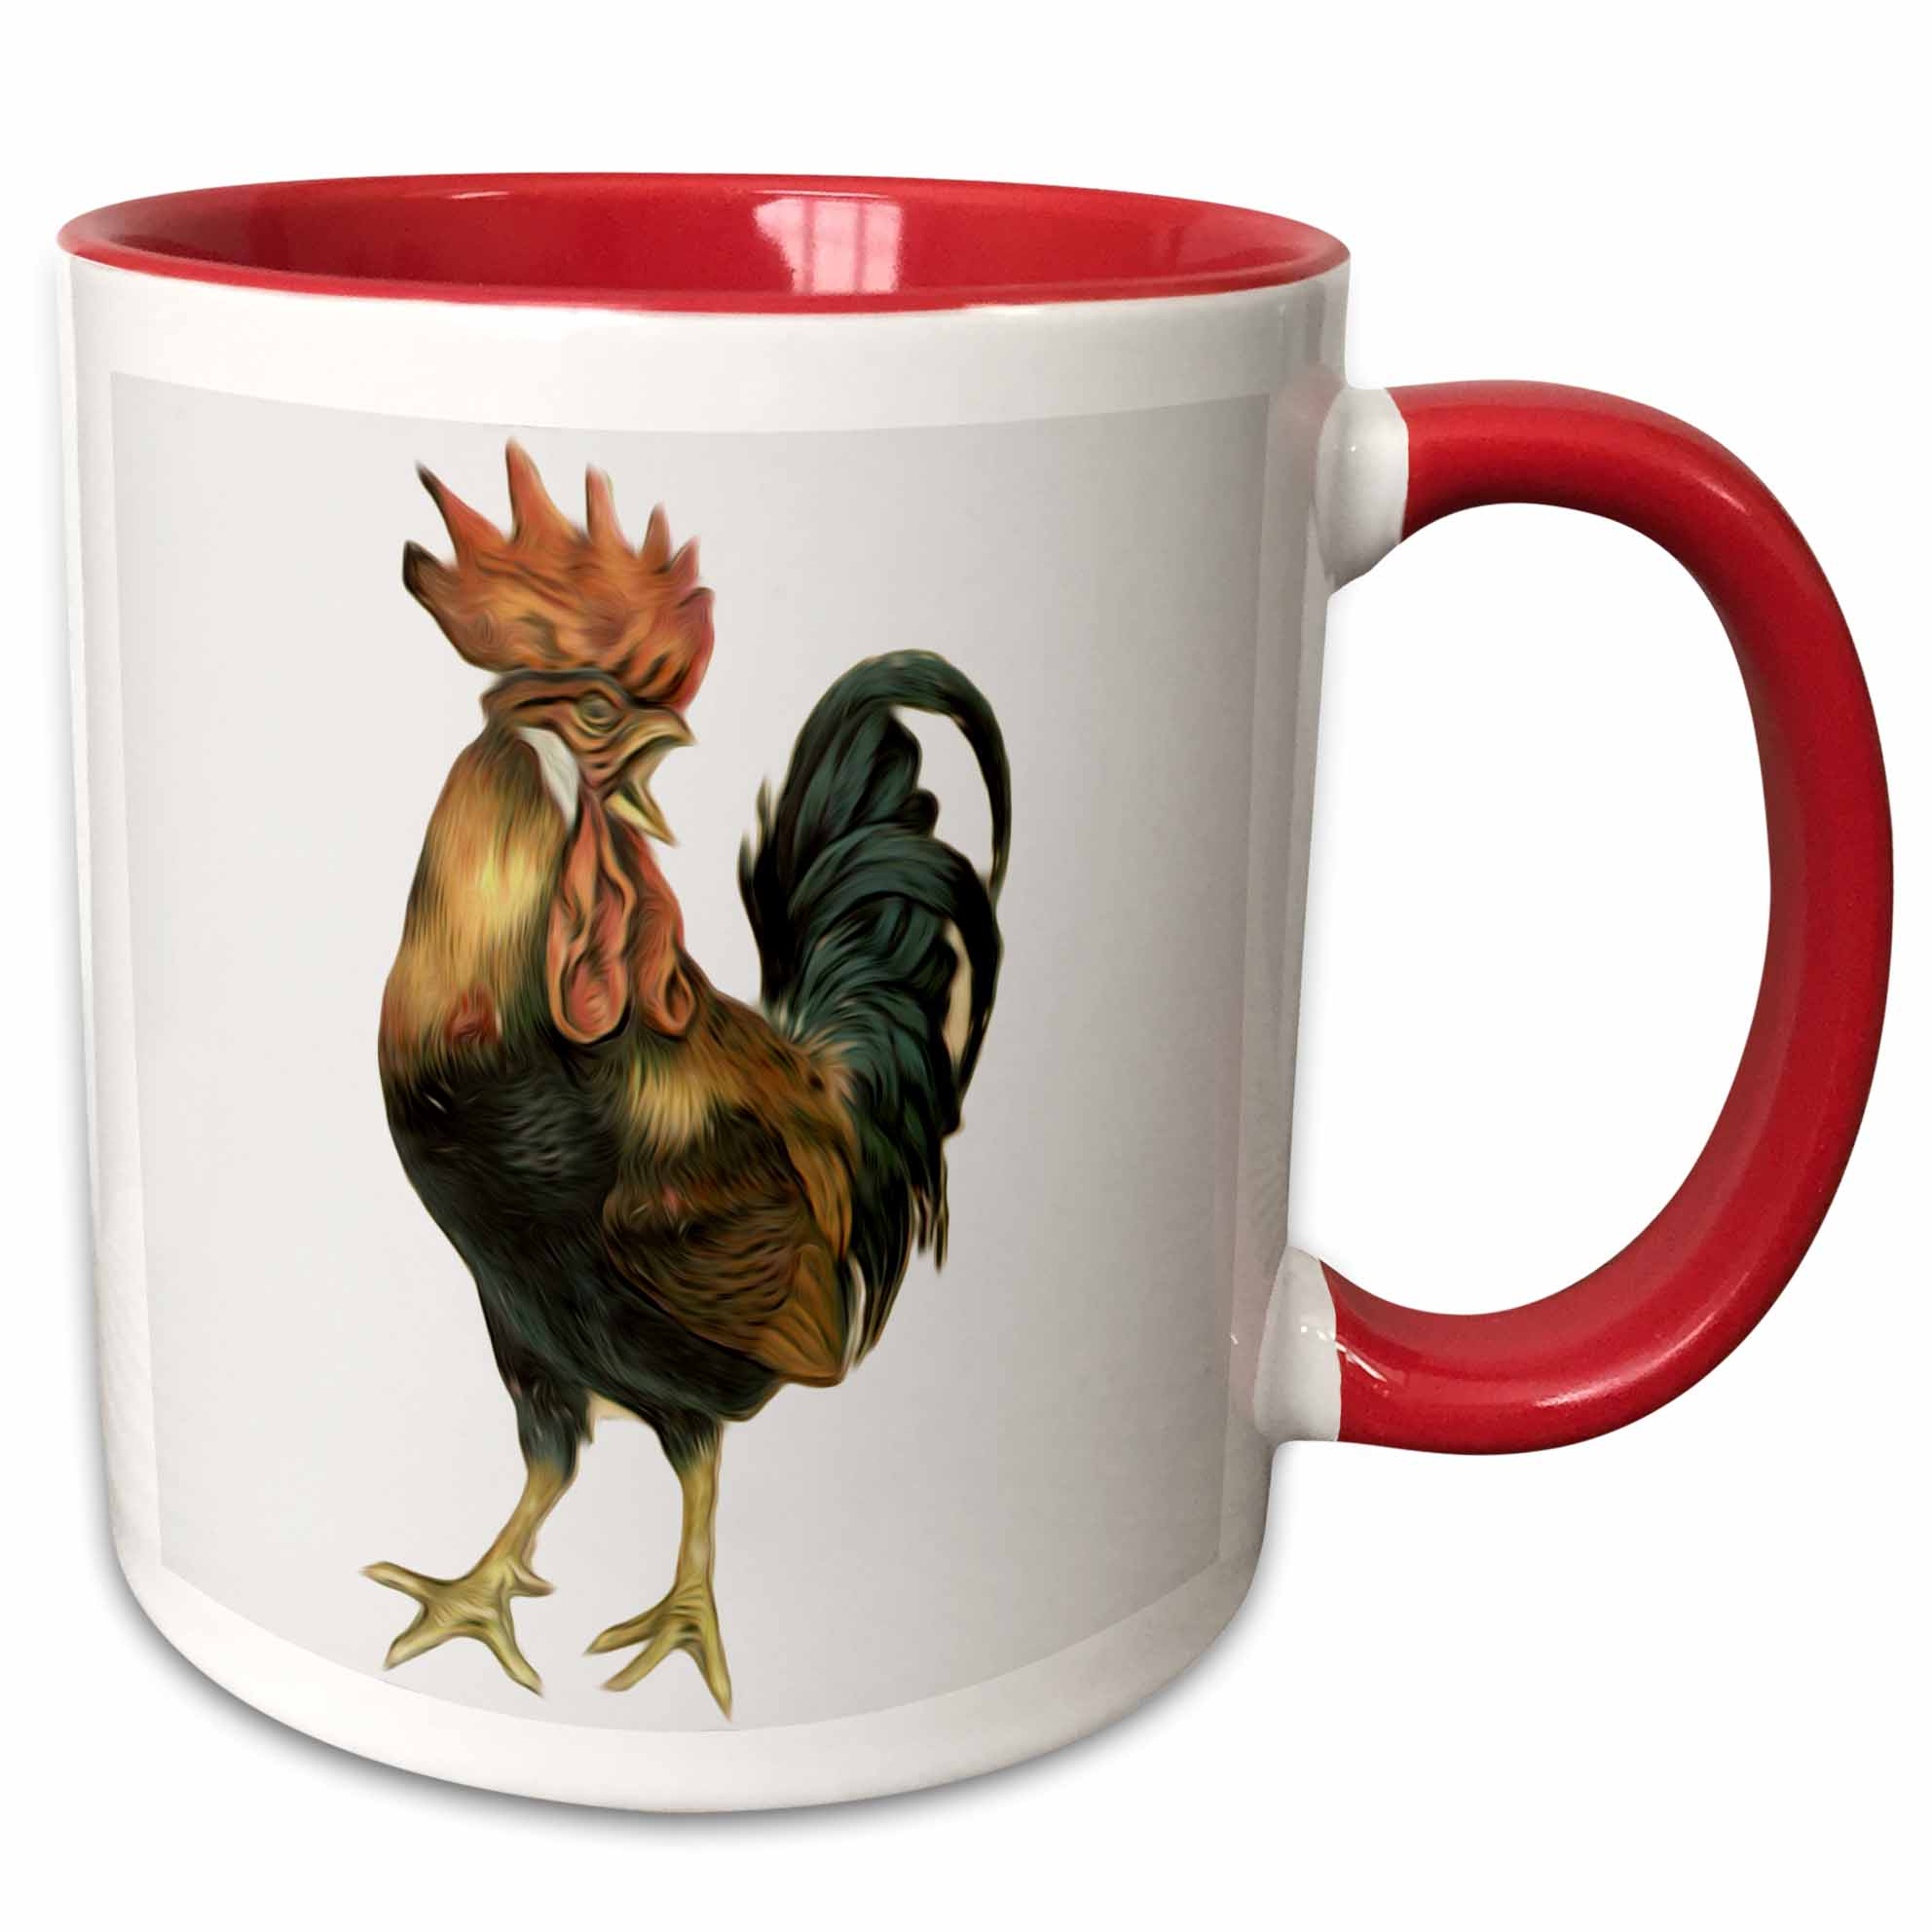 3dRose Vintage Antique Bird Illustration Cock Rooster Chicken - Two Tone Red Mug, 11-ounce